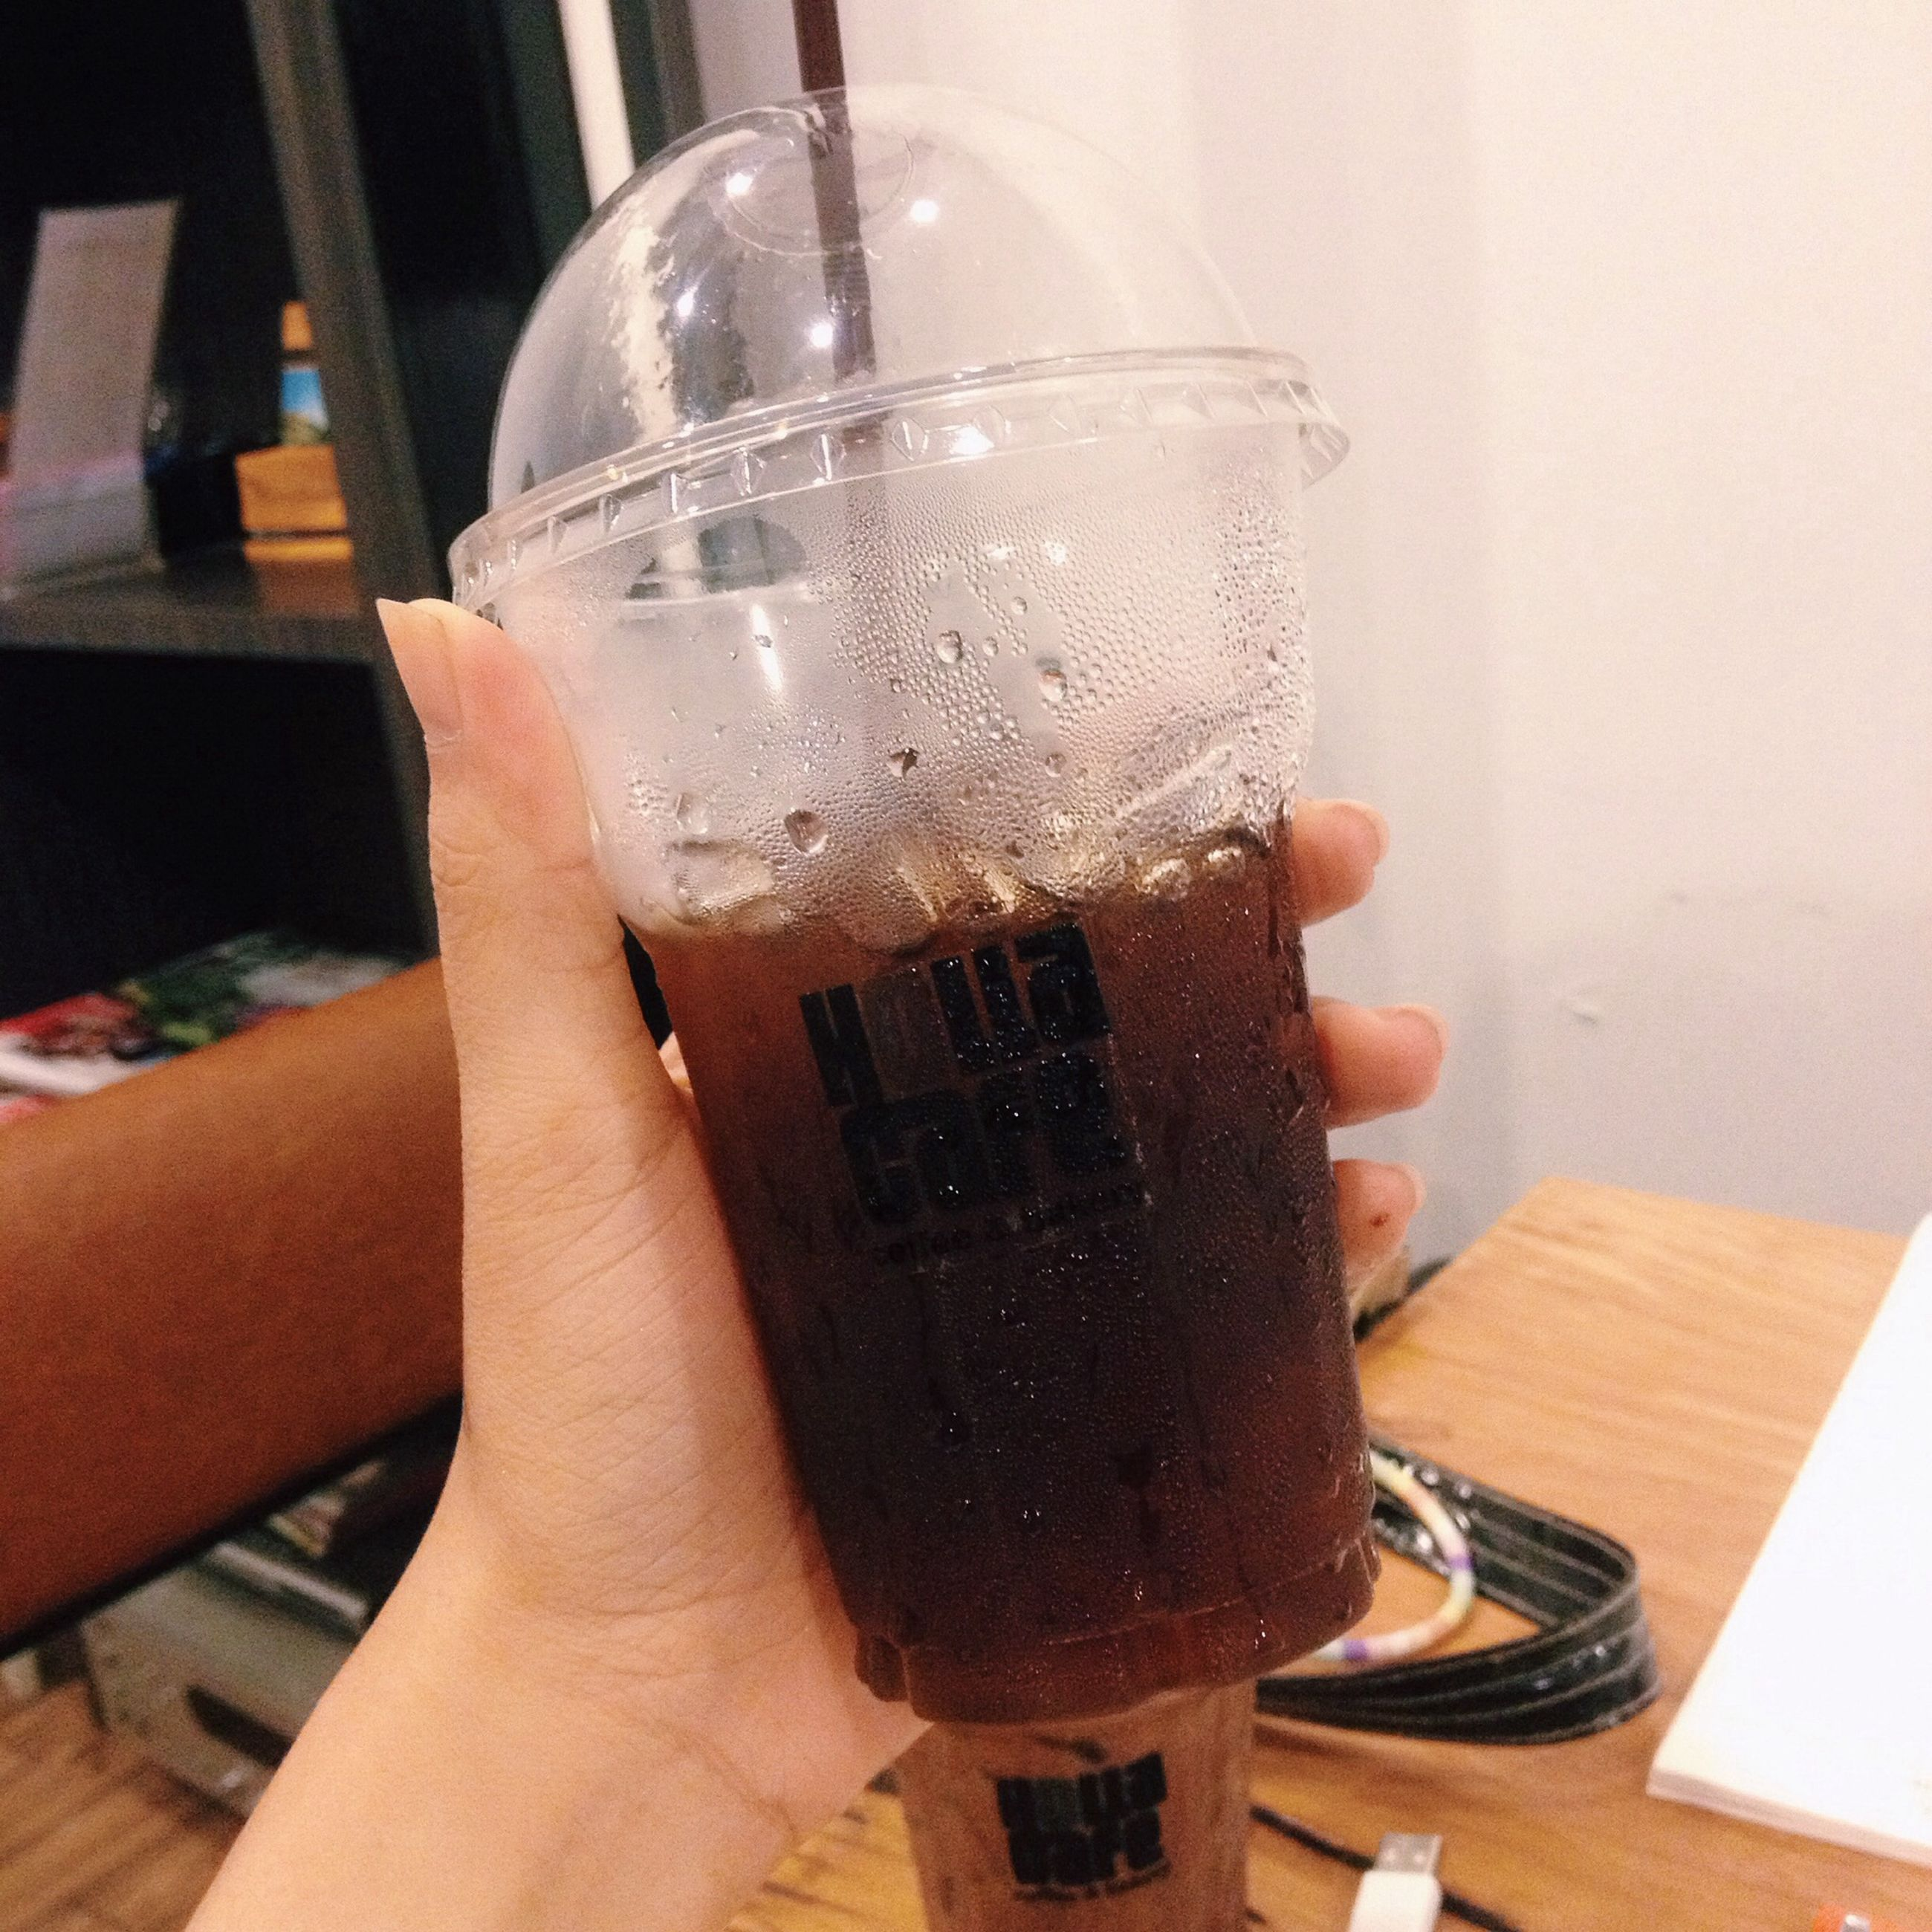 drink, food and drink, refreshment, indoors, table, person, drinking glass, freshness, holding, alcohol, lifestyles, part of, coffee - drink, coffee cup, cropped, close-up, leisure activity